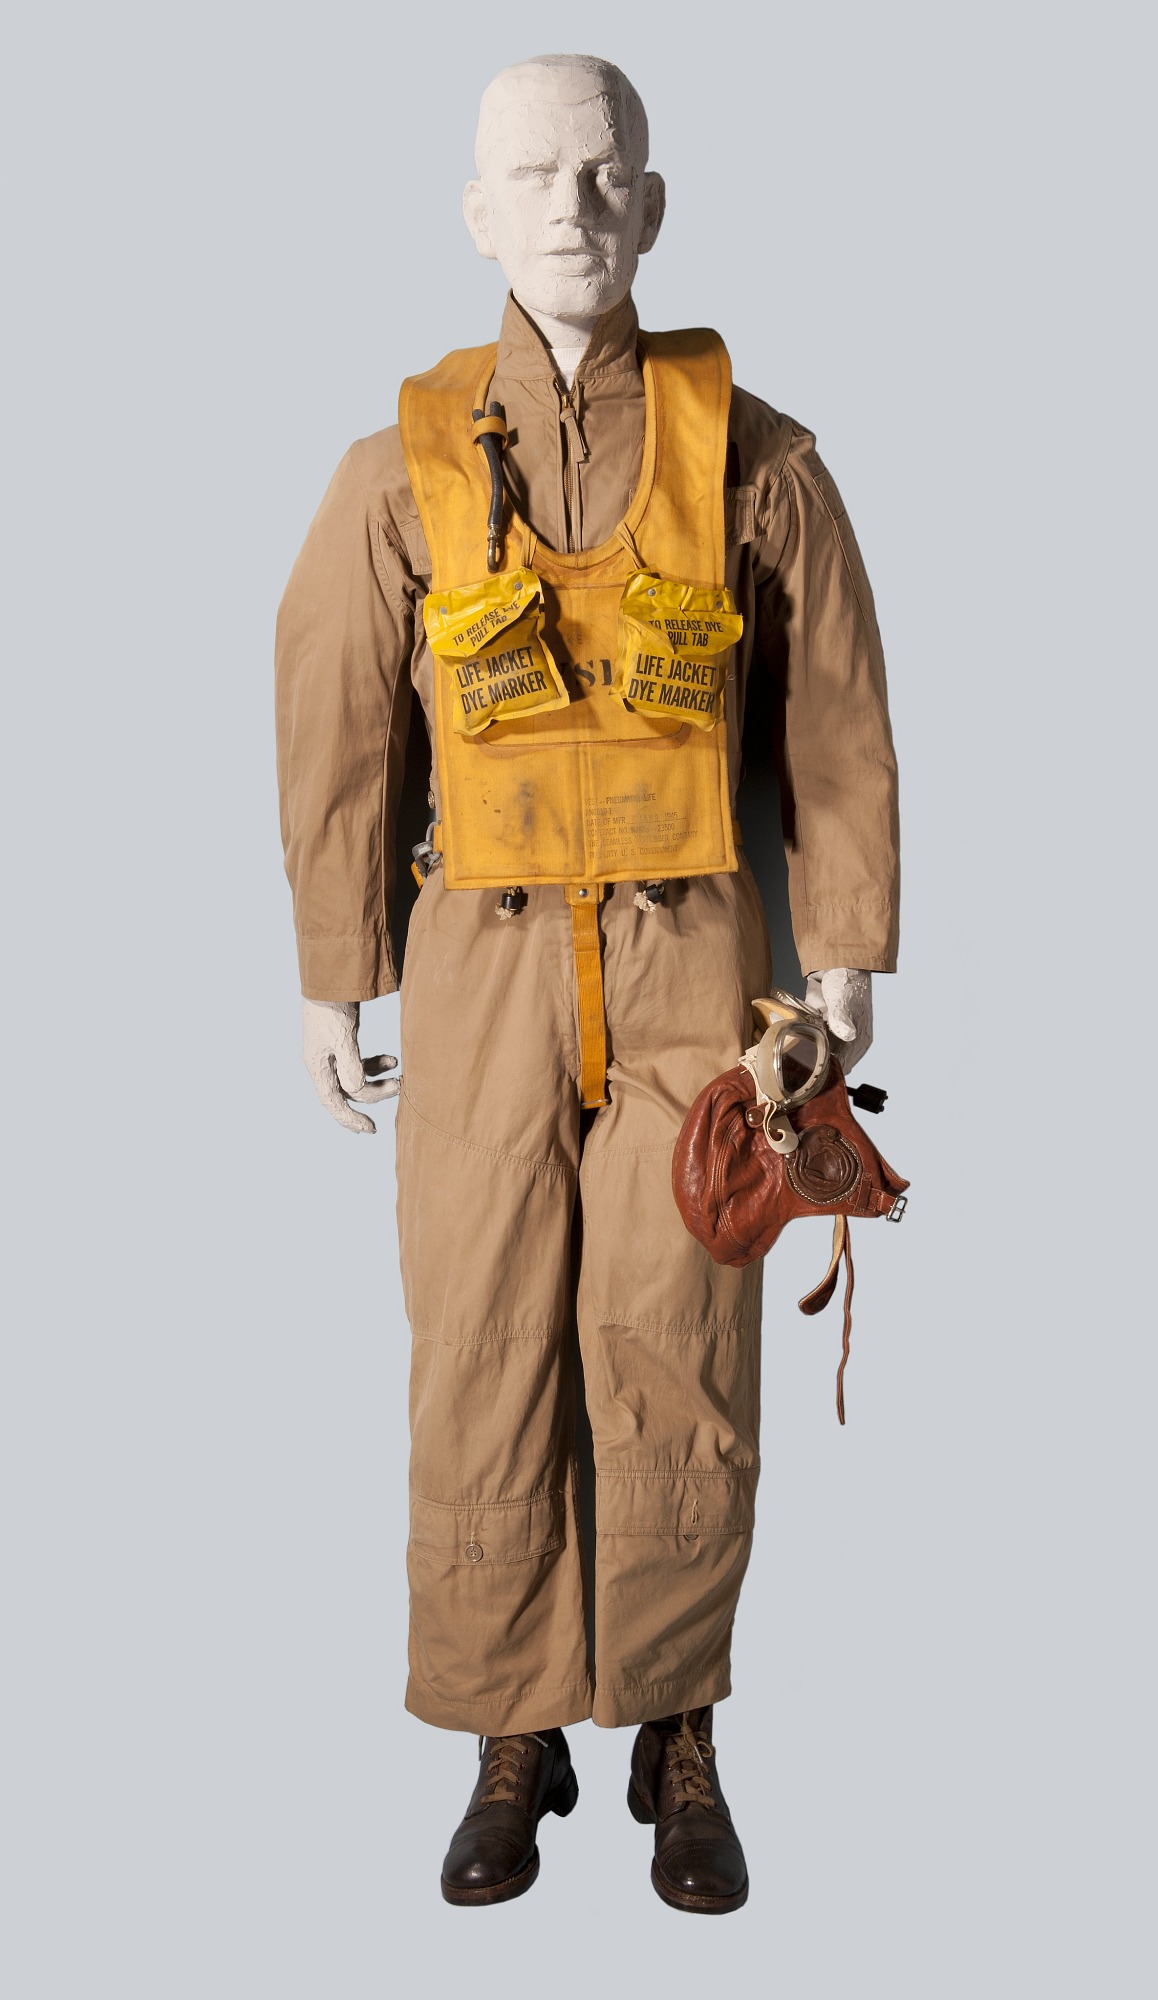 Image of : Suit, Flying, Type S, United States Navy